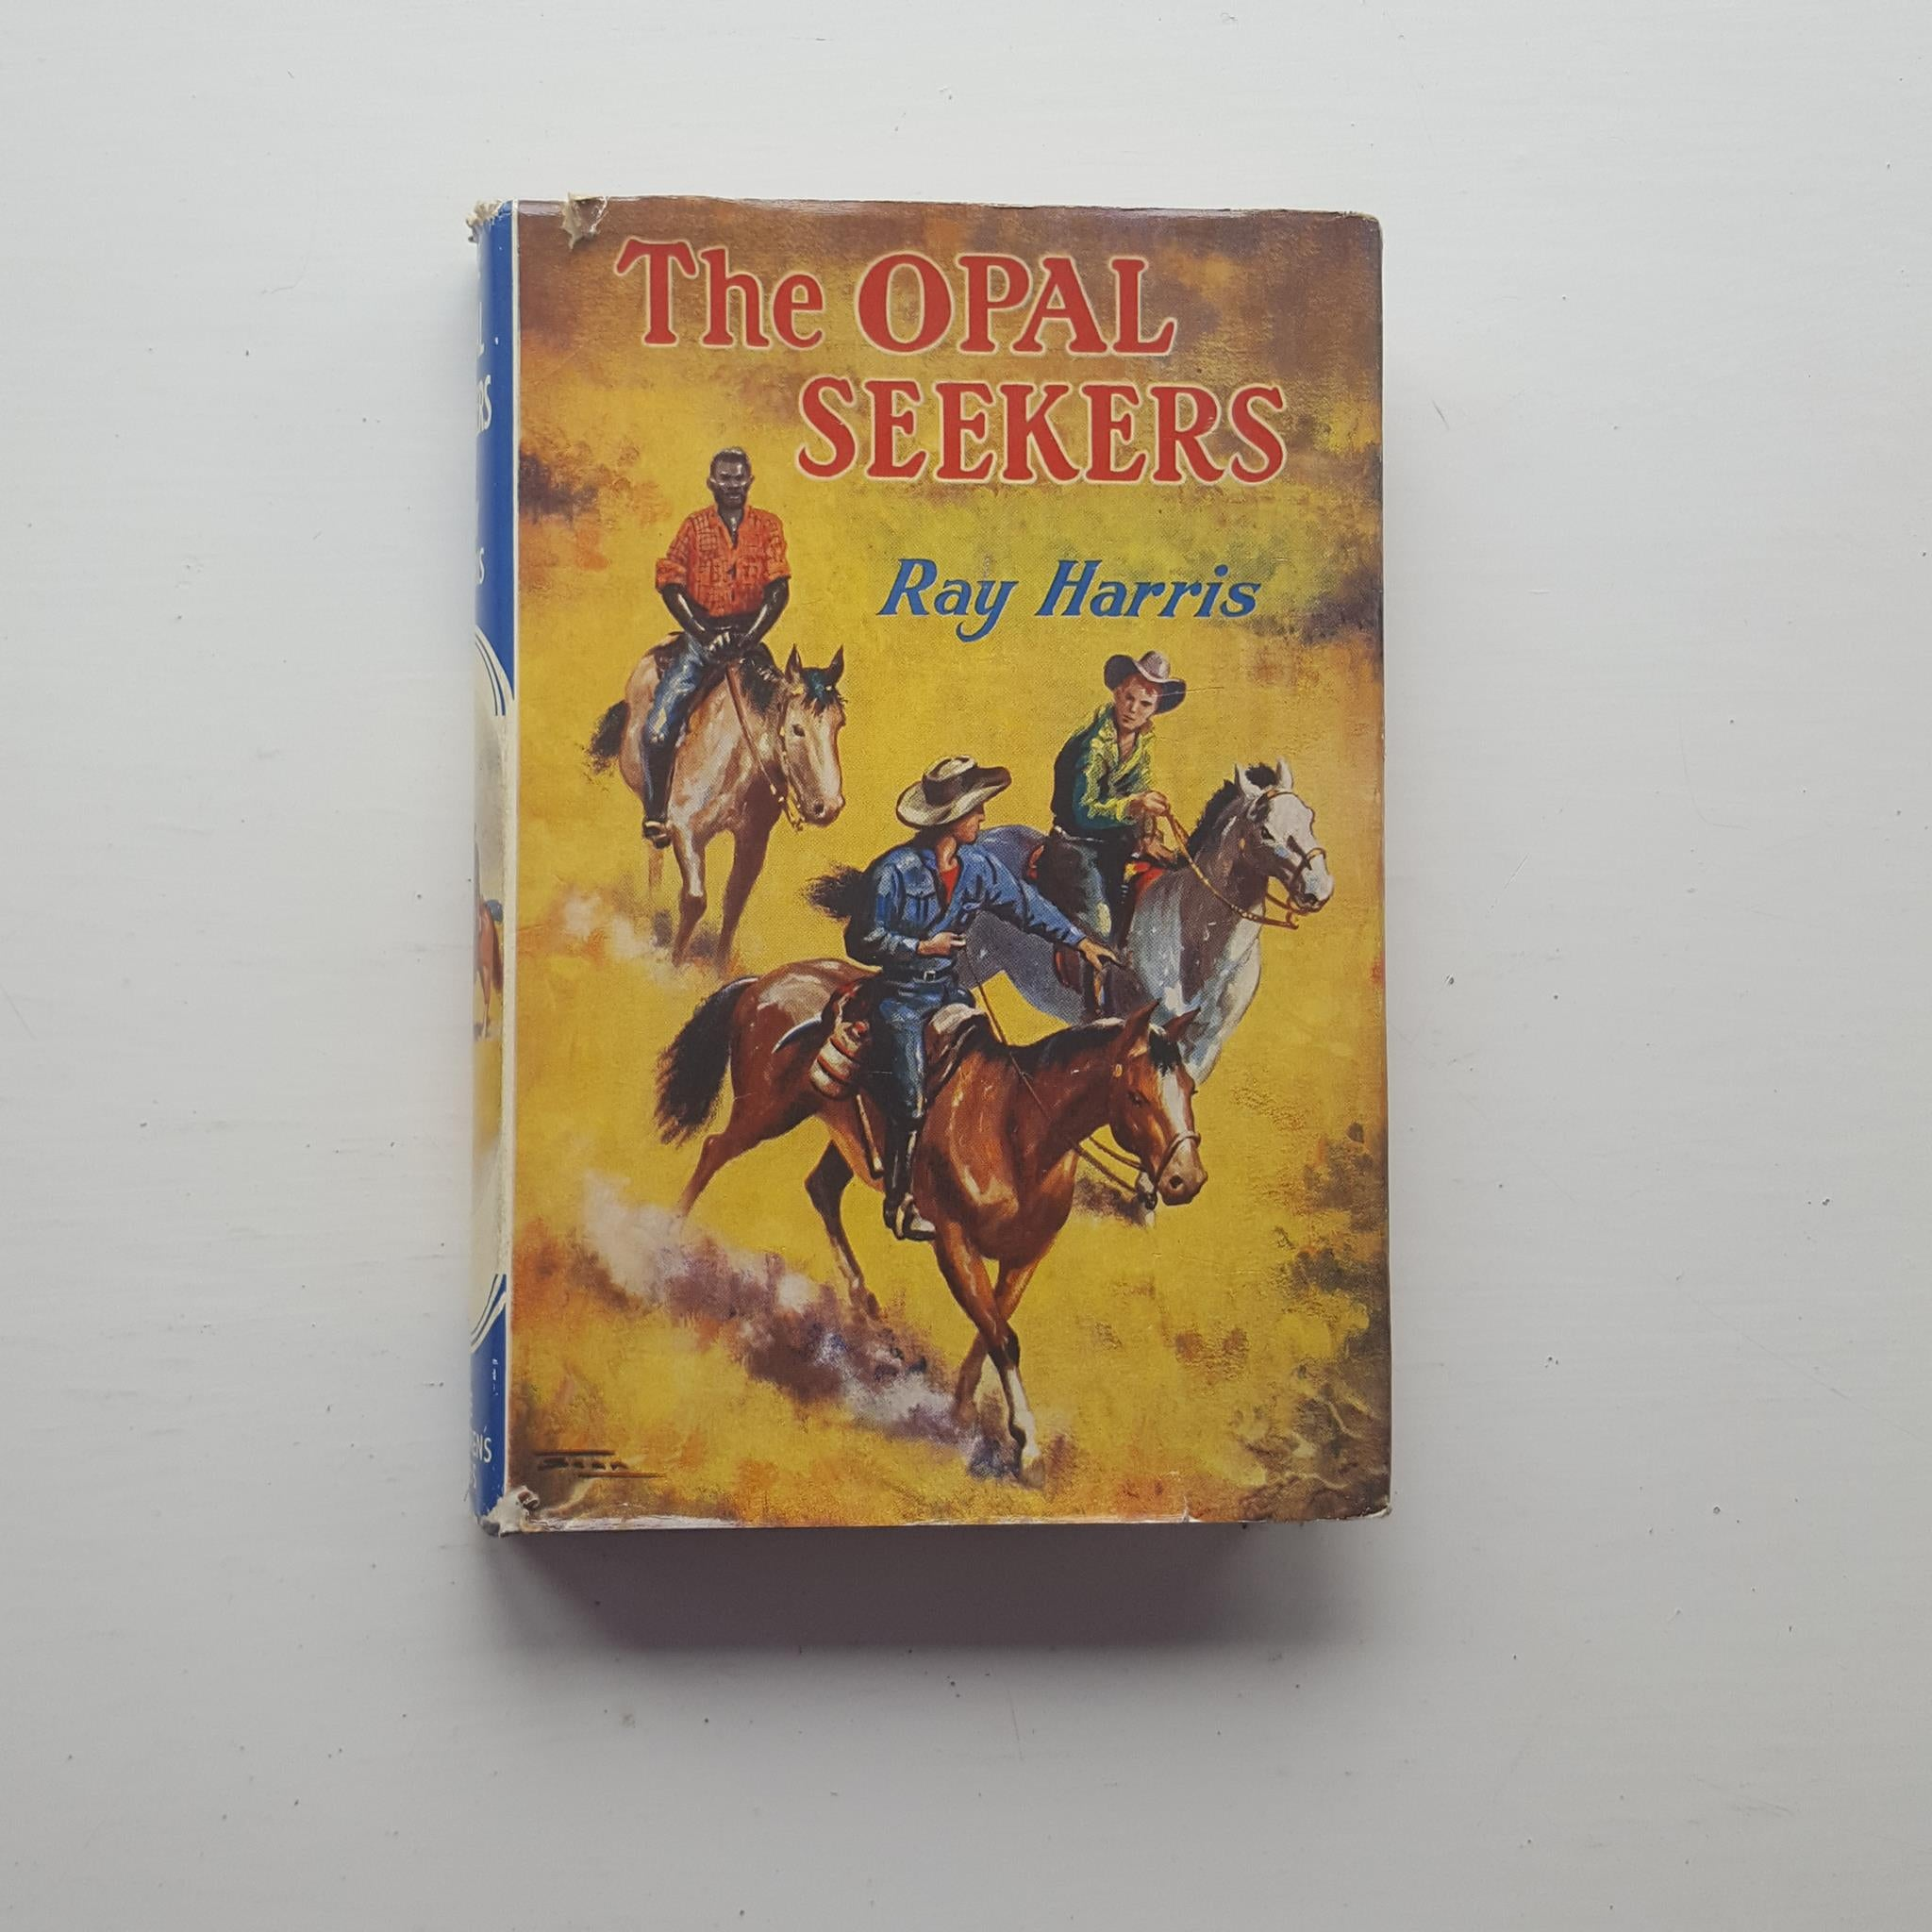 The Opal Seekers by Ray Harris